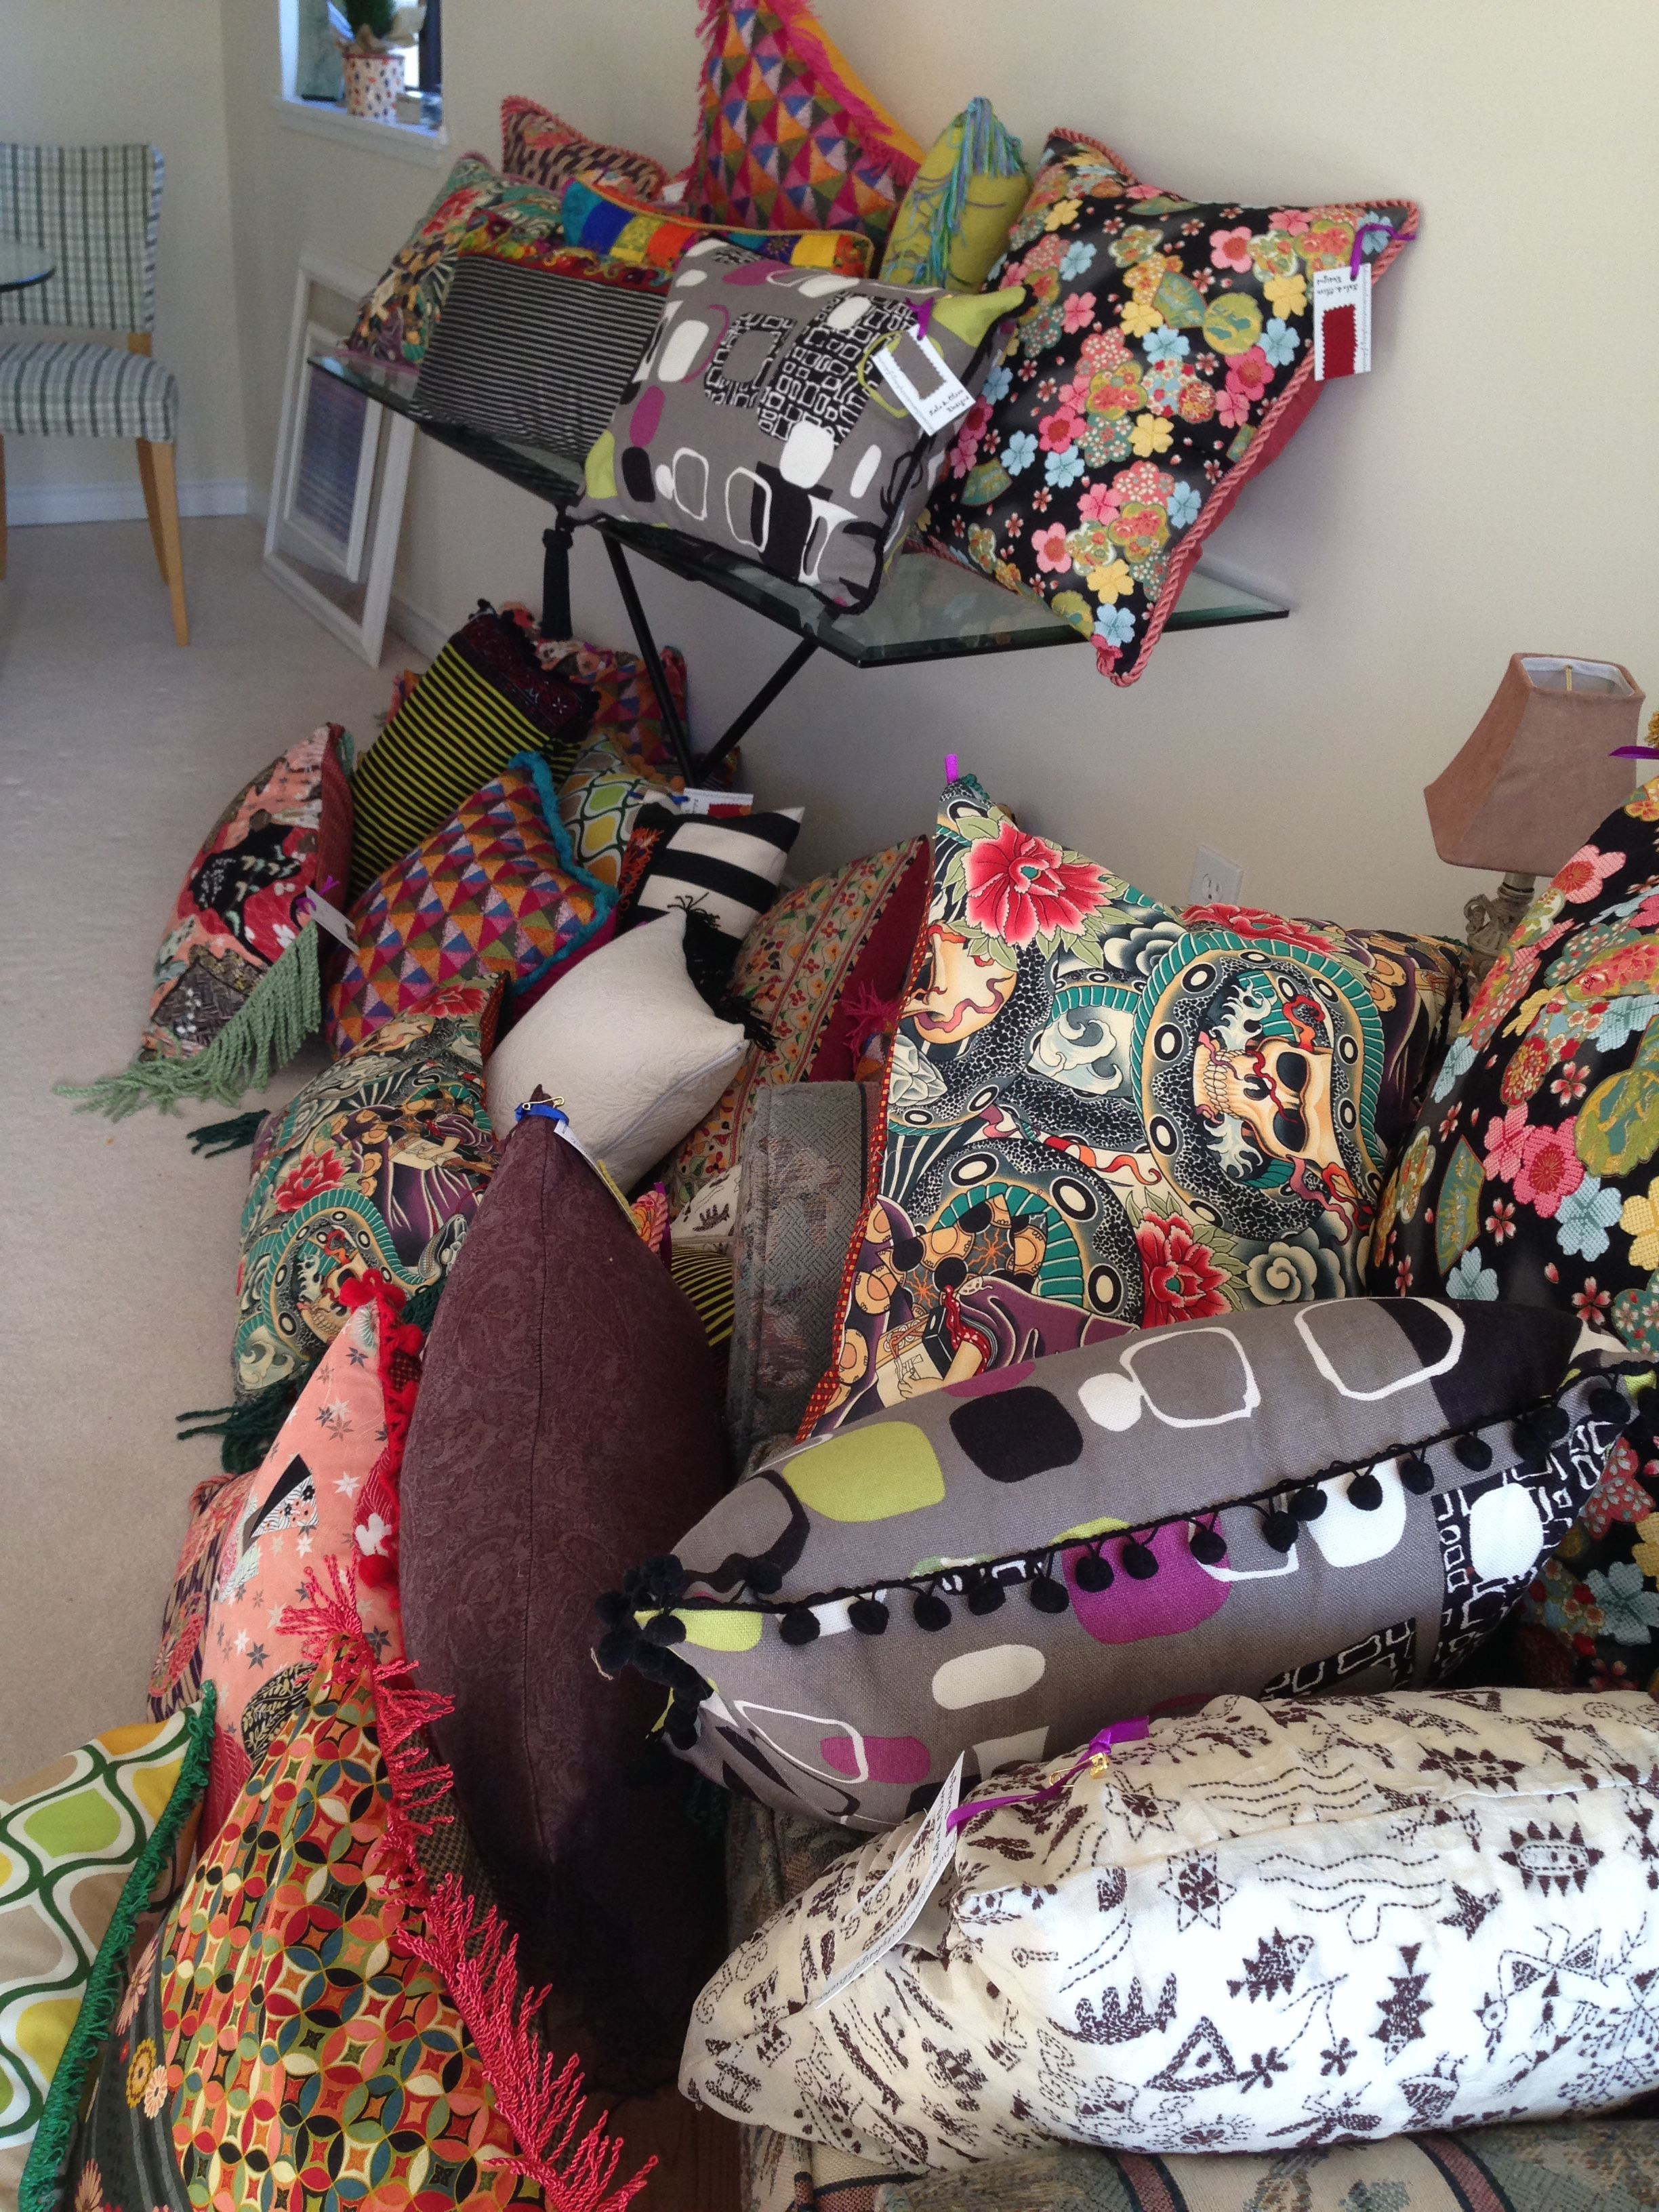 Lola and Olive Designs pillow and quilt party | CUSHION envy ... : pillow and quilt - Adamdwight.com